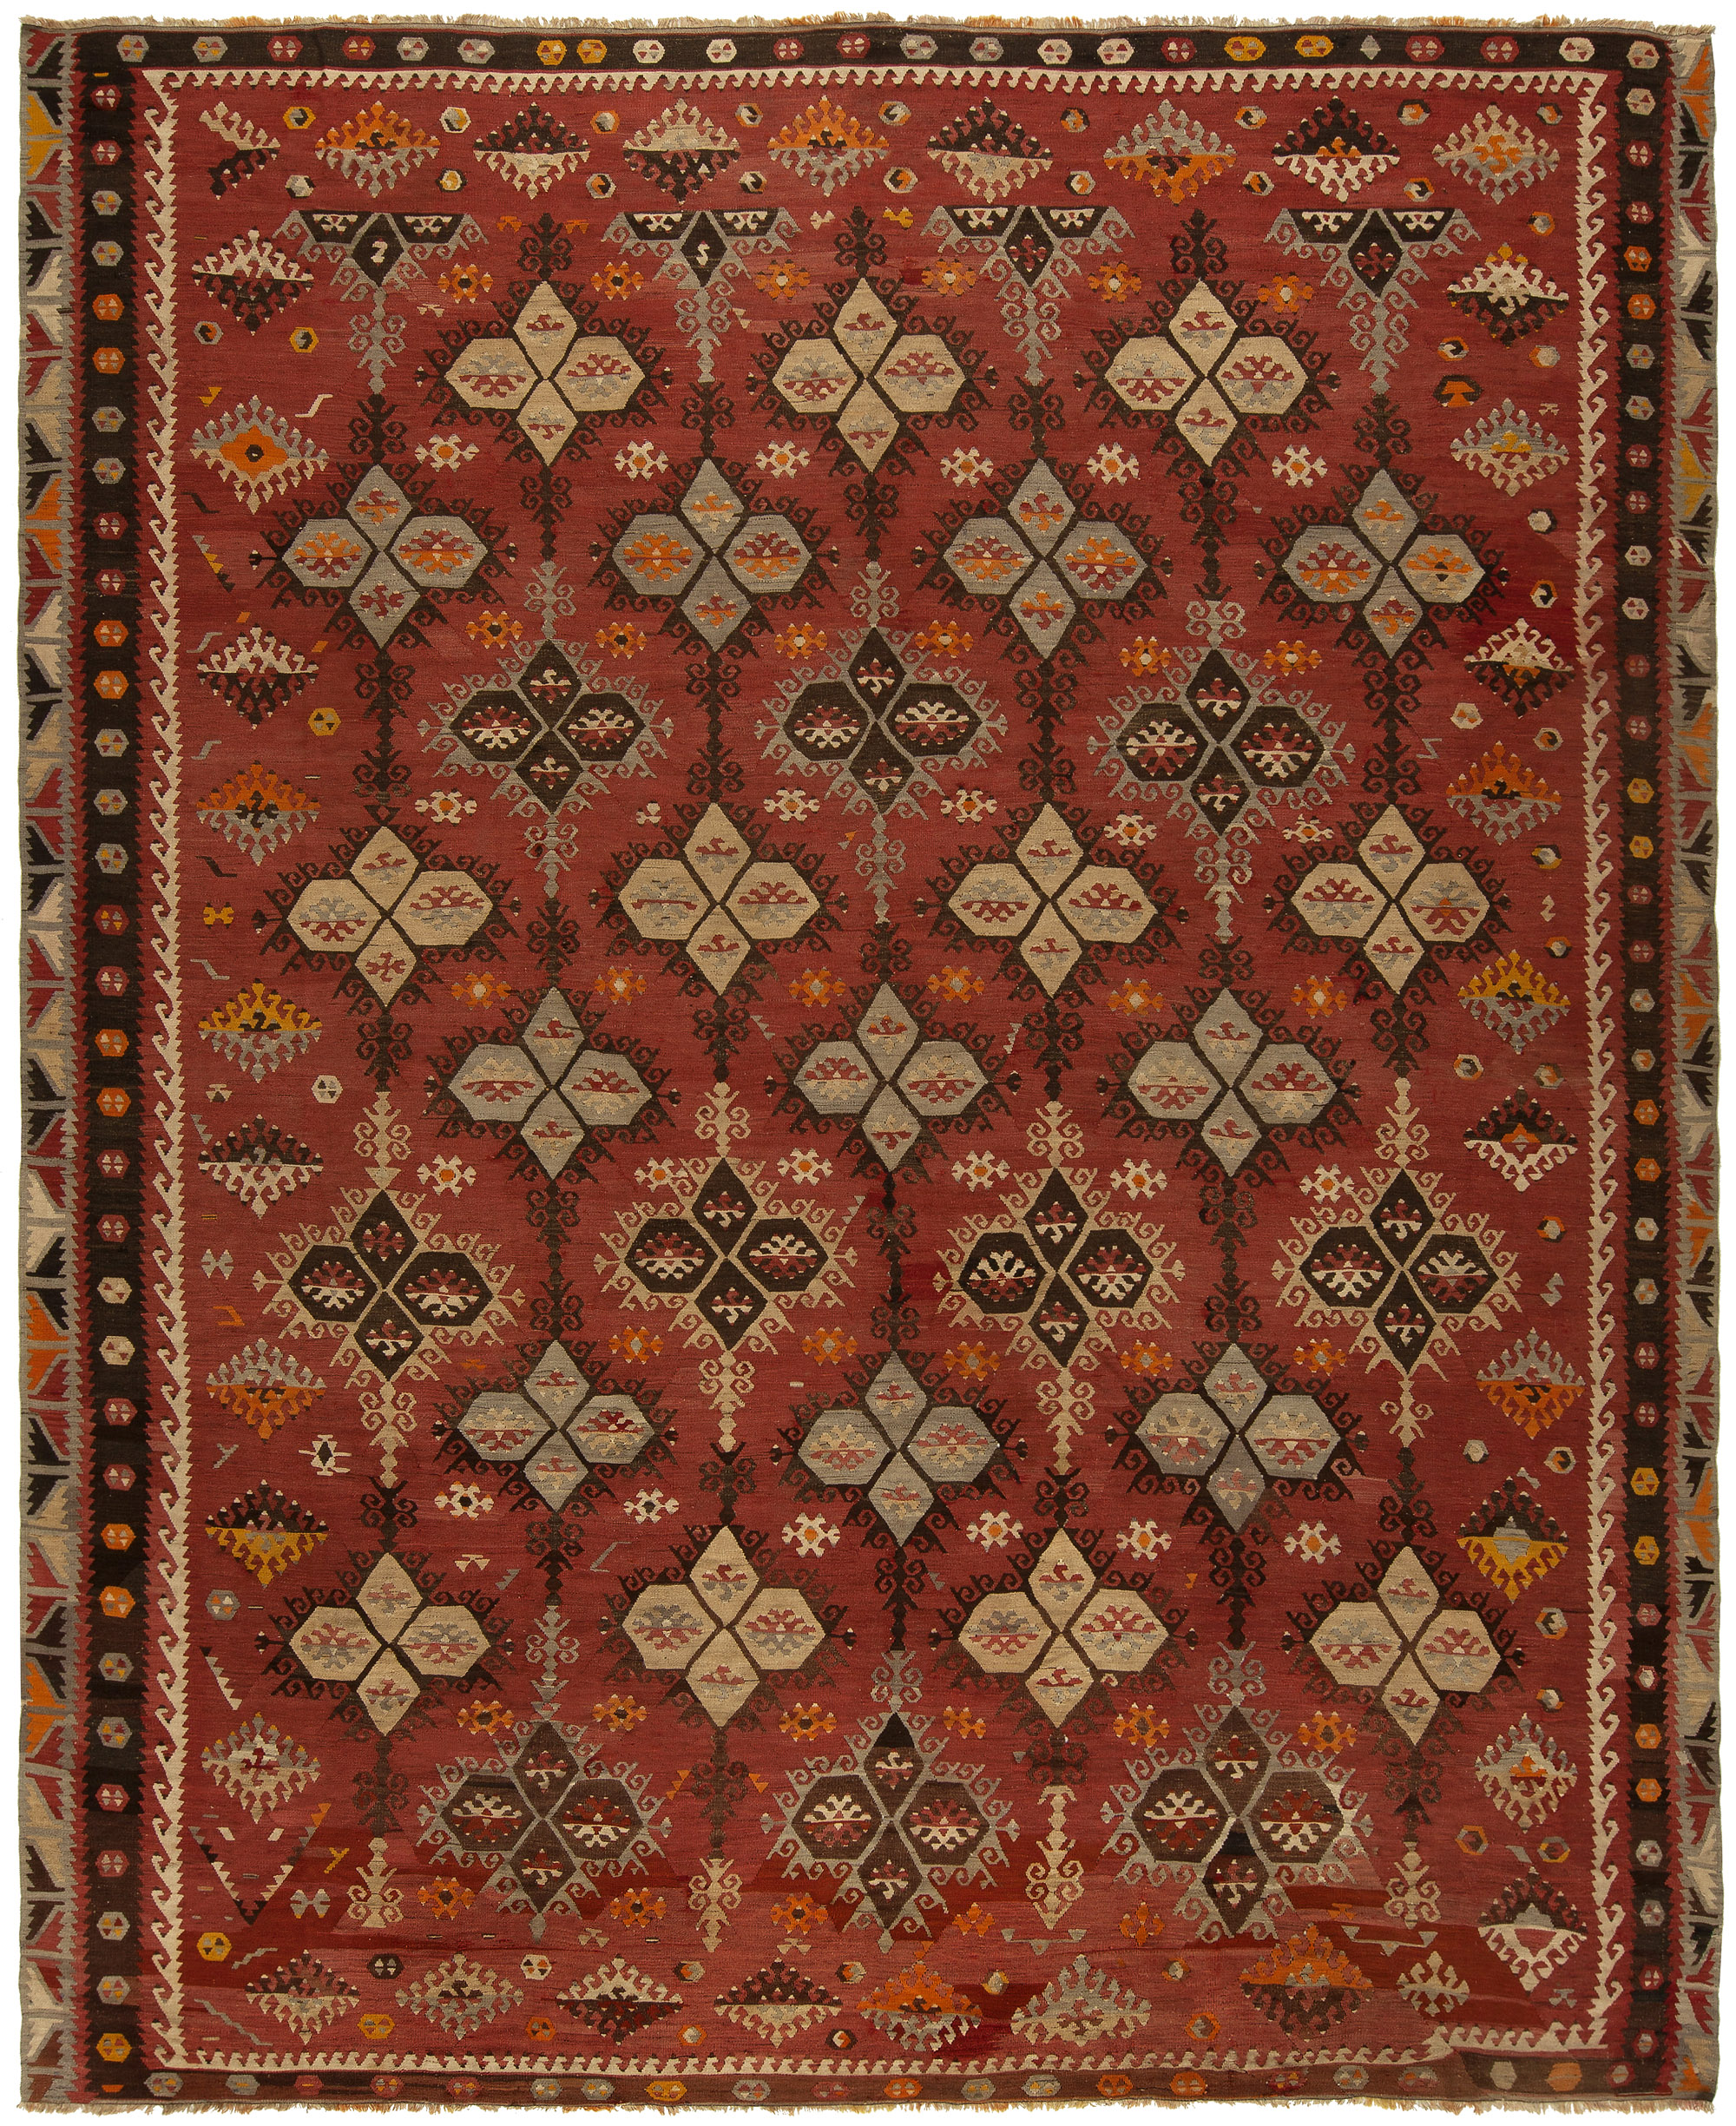 Turkish Kilim Rug Bb5429 By Doris Leslie Blau